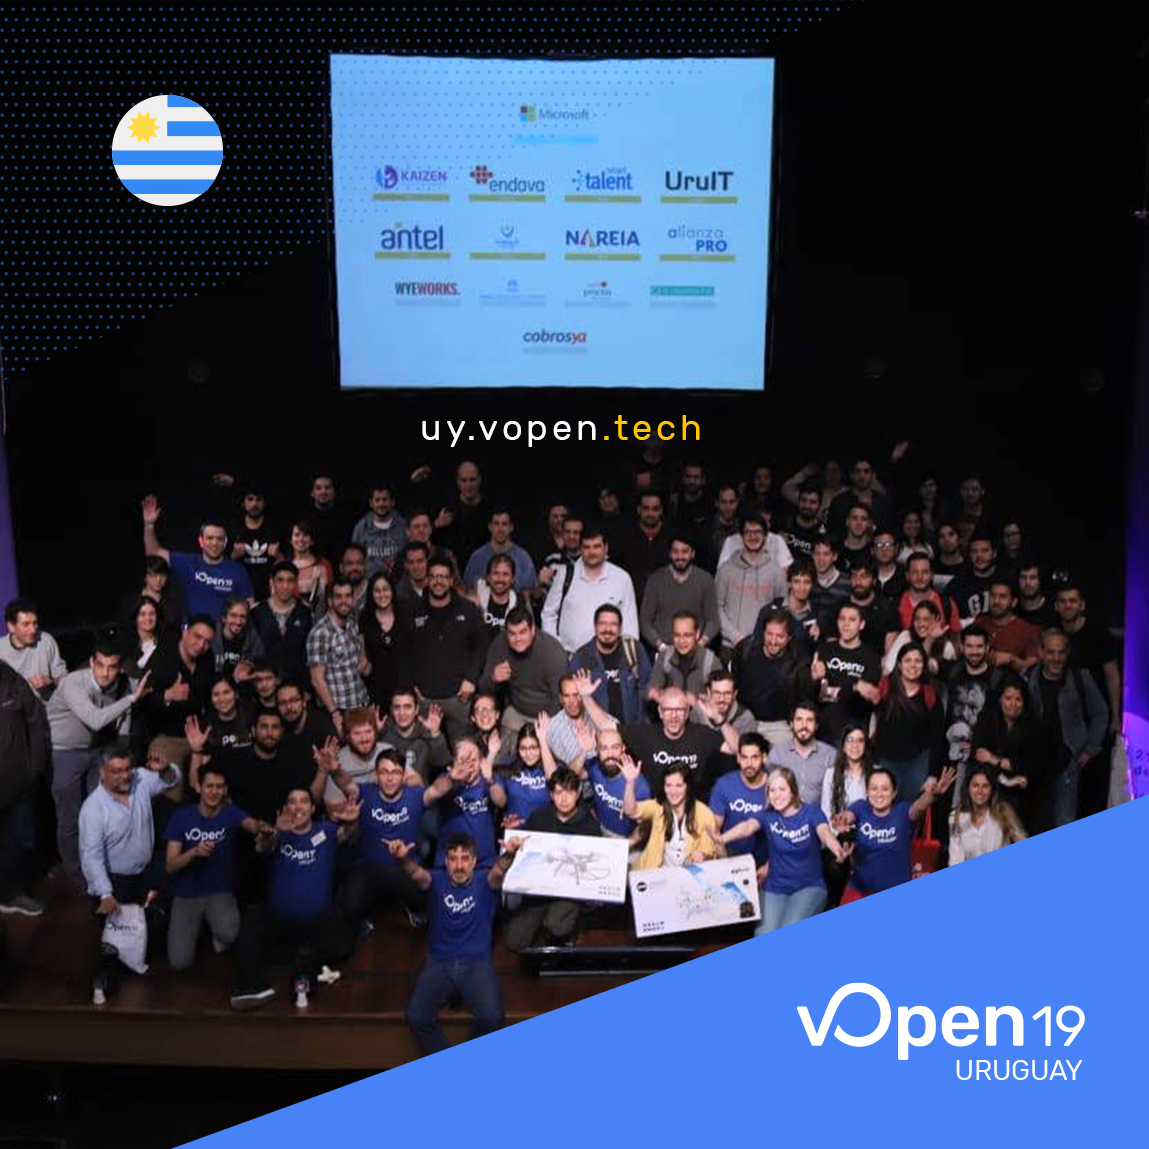 "vOpen 2019 UY <span class=""bsf-rt-reading-time""><span class=""bsf-rt-display-label"" prefix=""Reading Time""></span> <span class=""bsf-rt-display-time"" reading_time=""1""></span> <span class=""bsf-rt-display-postfix"" postfix=""mins""></span></span>"